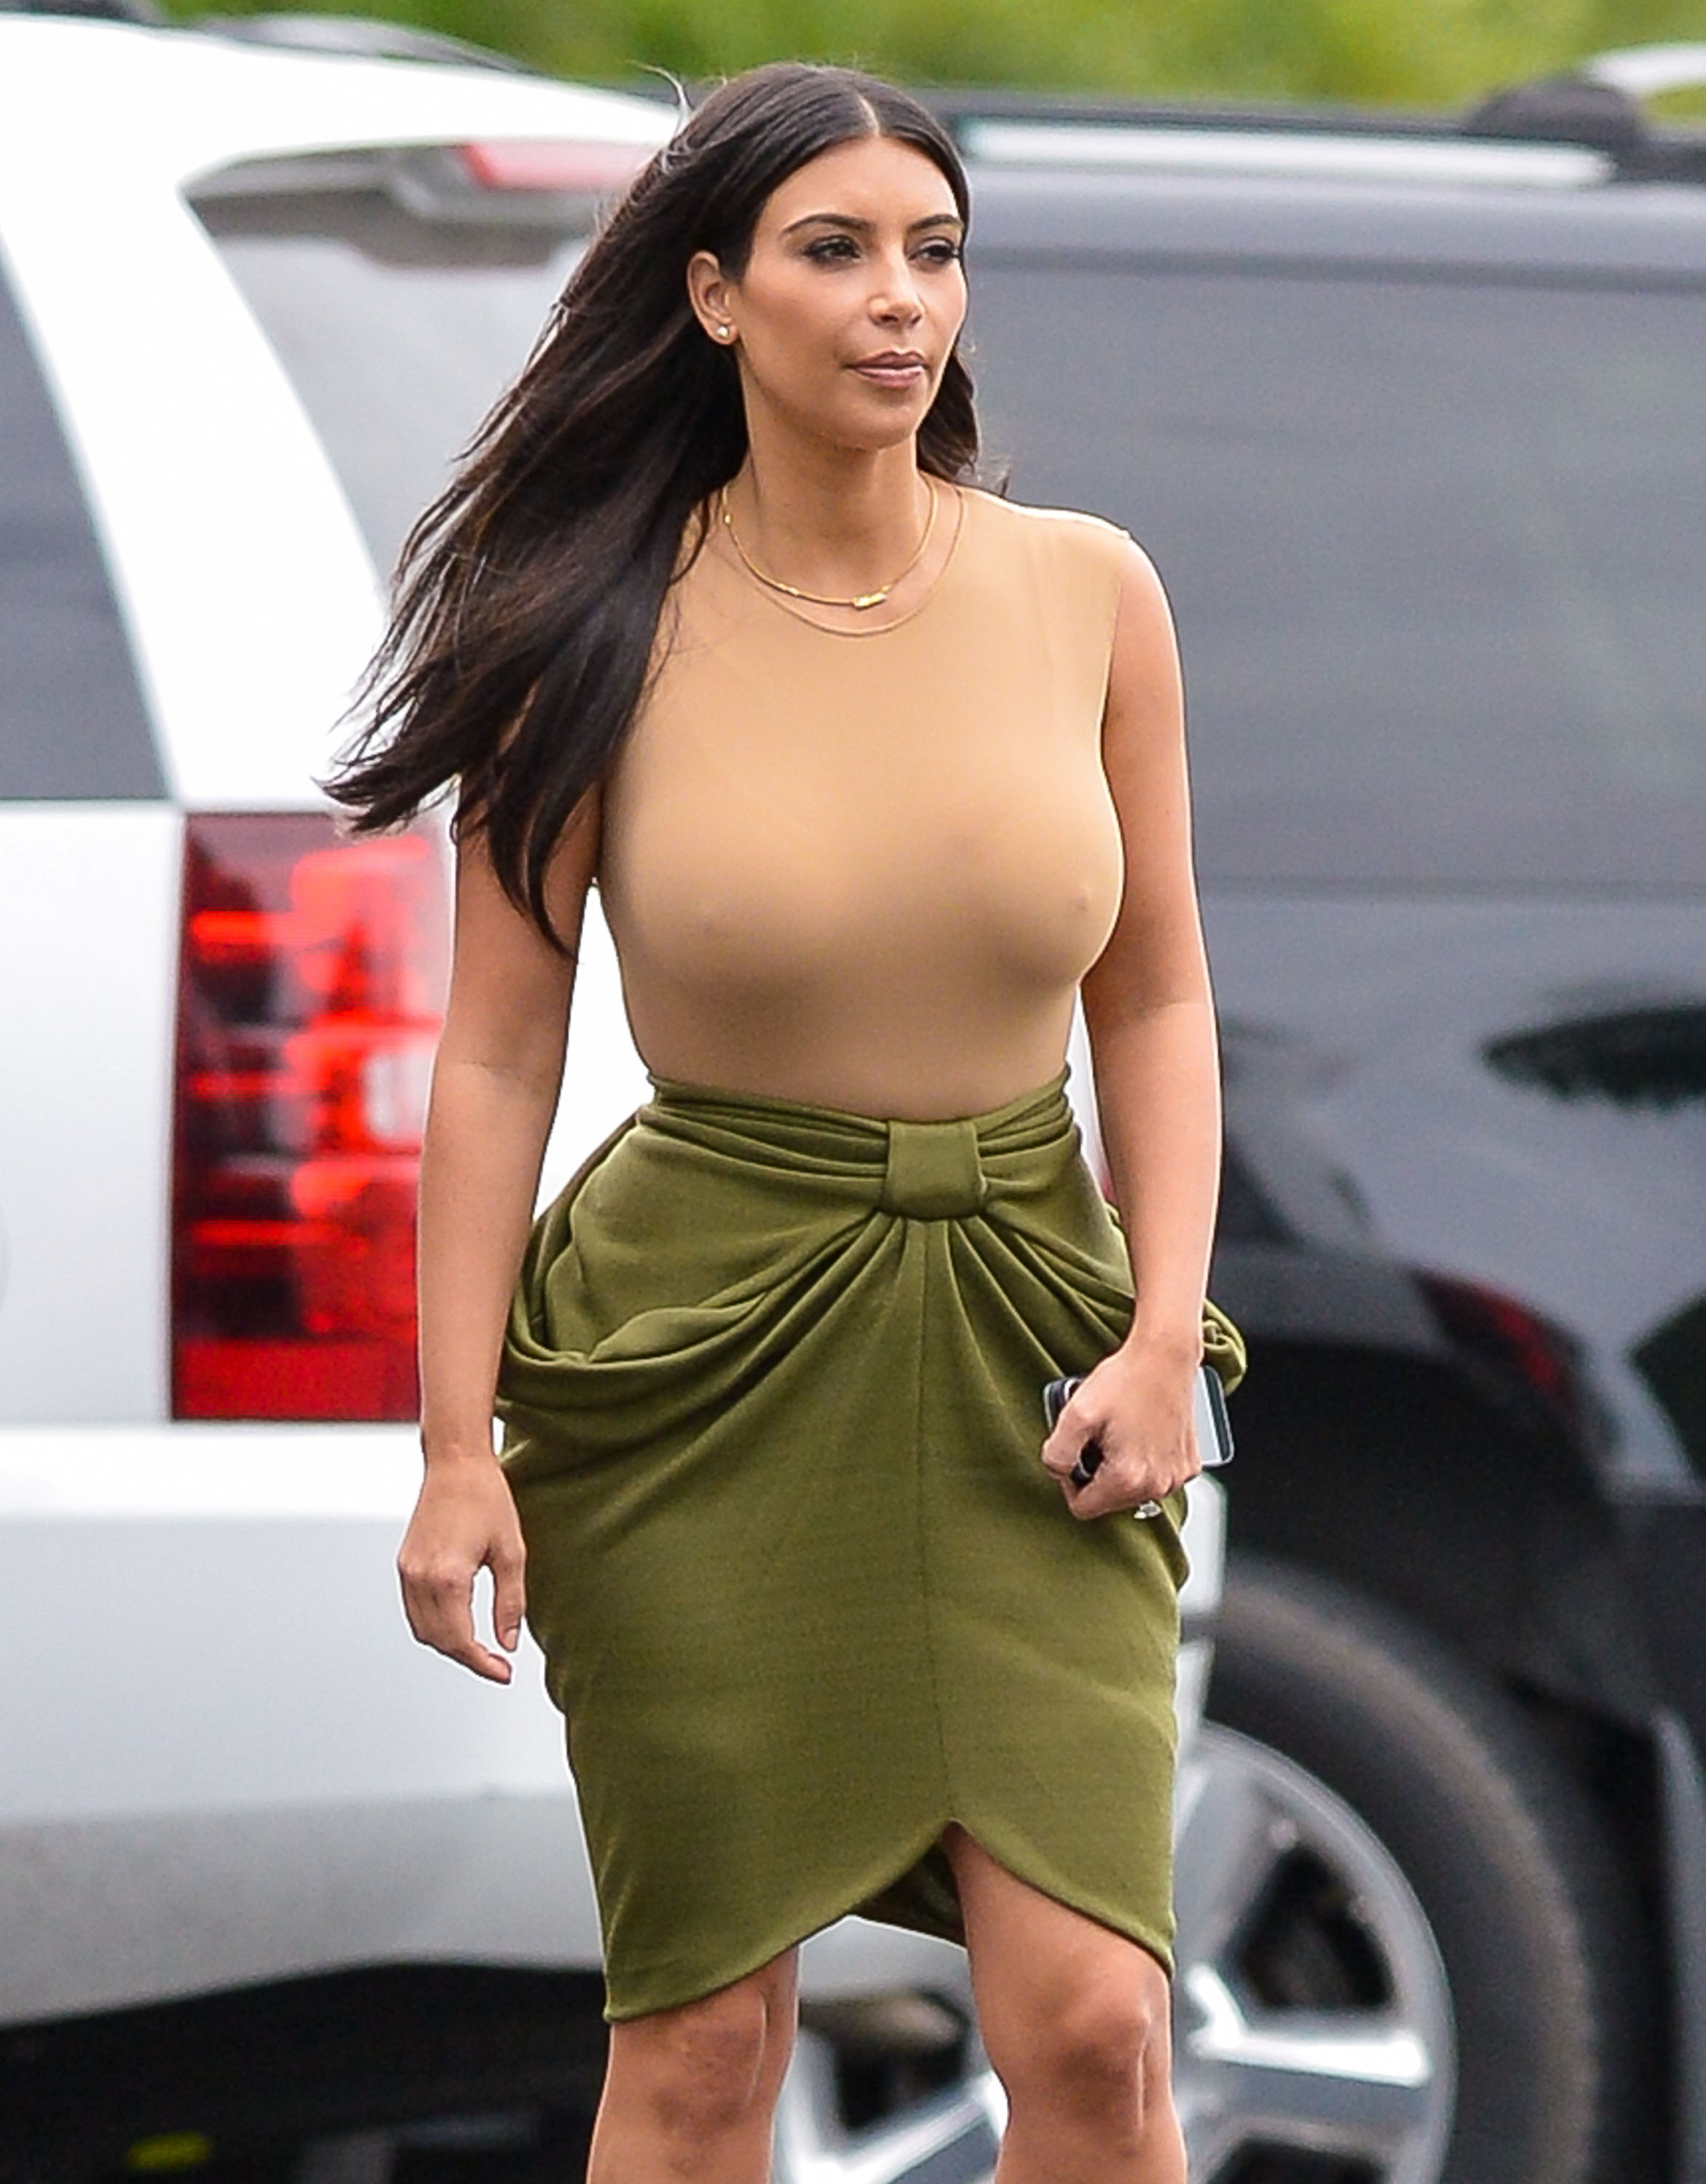 How Big Are Kim Kardashians Boobs 77